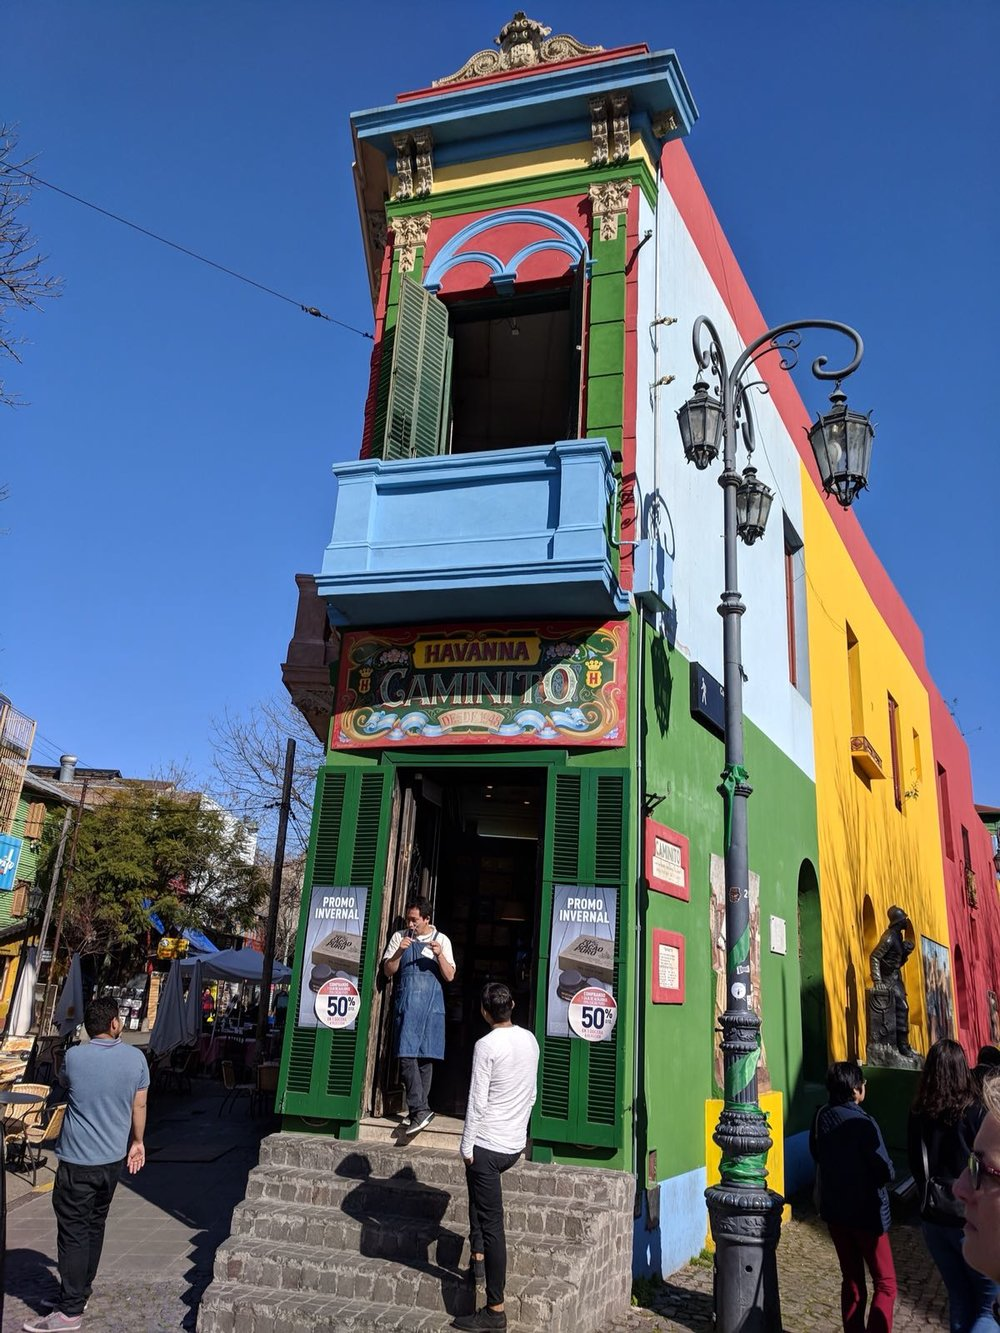 This little souvenir shop is one of the many colourful shop fronts that can be found in La Boca